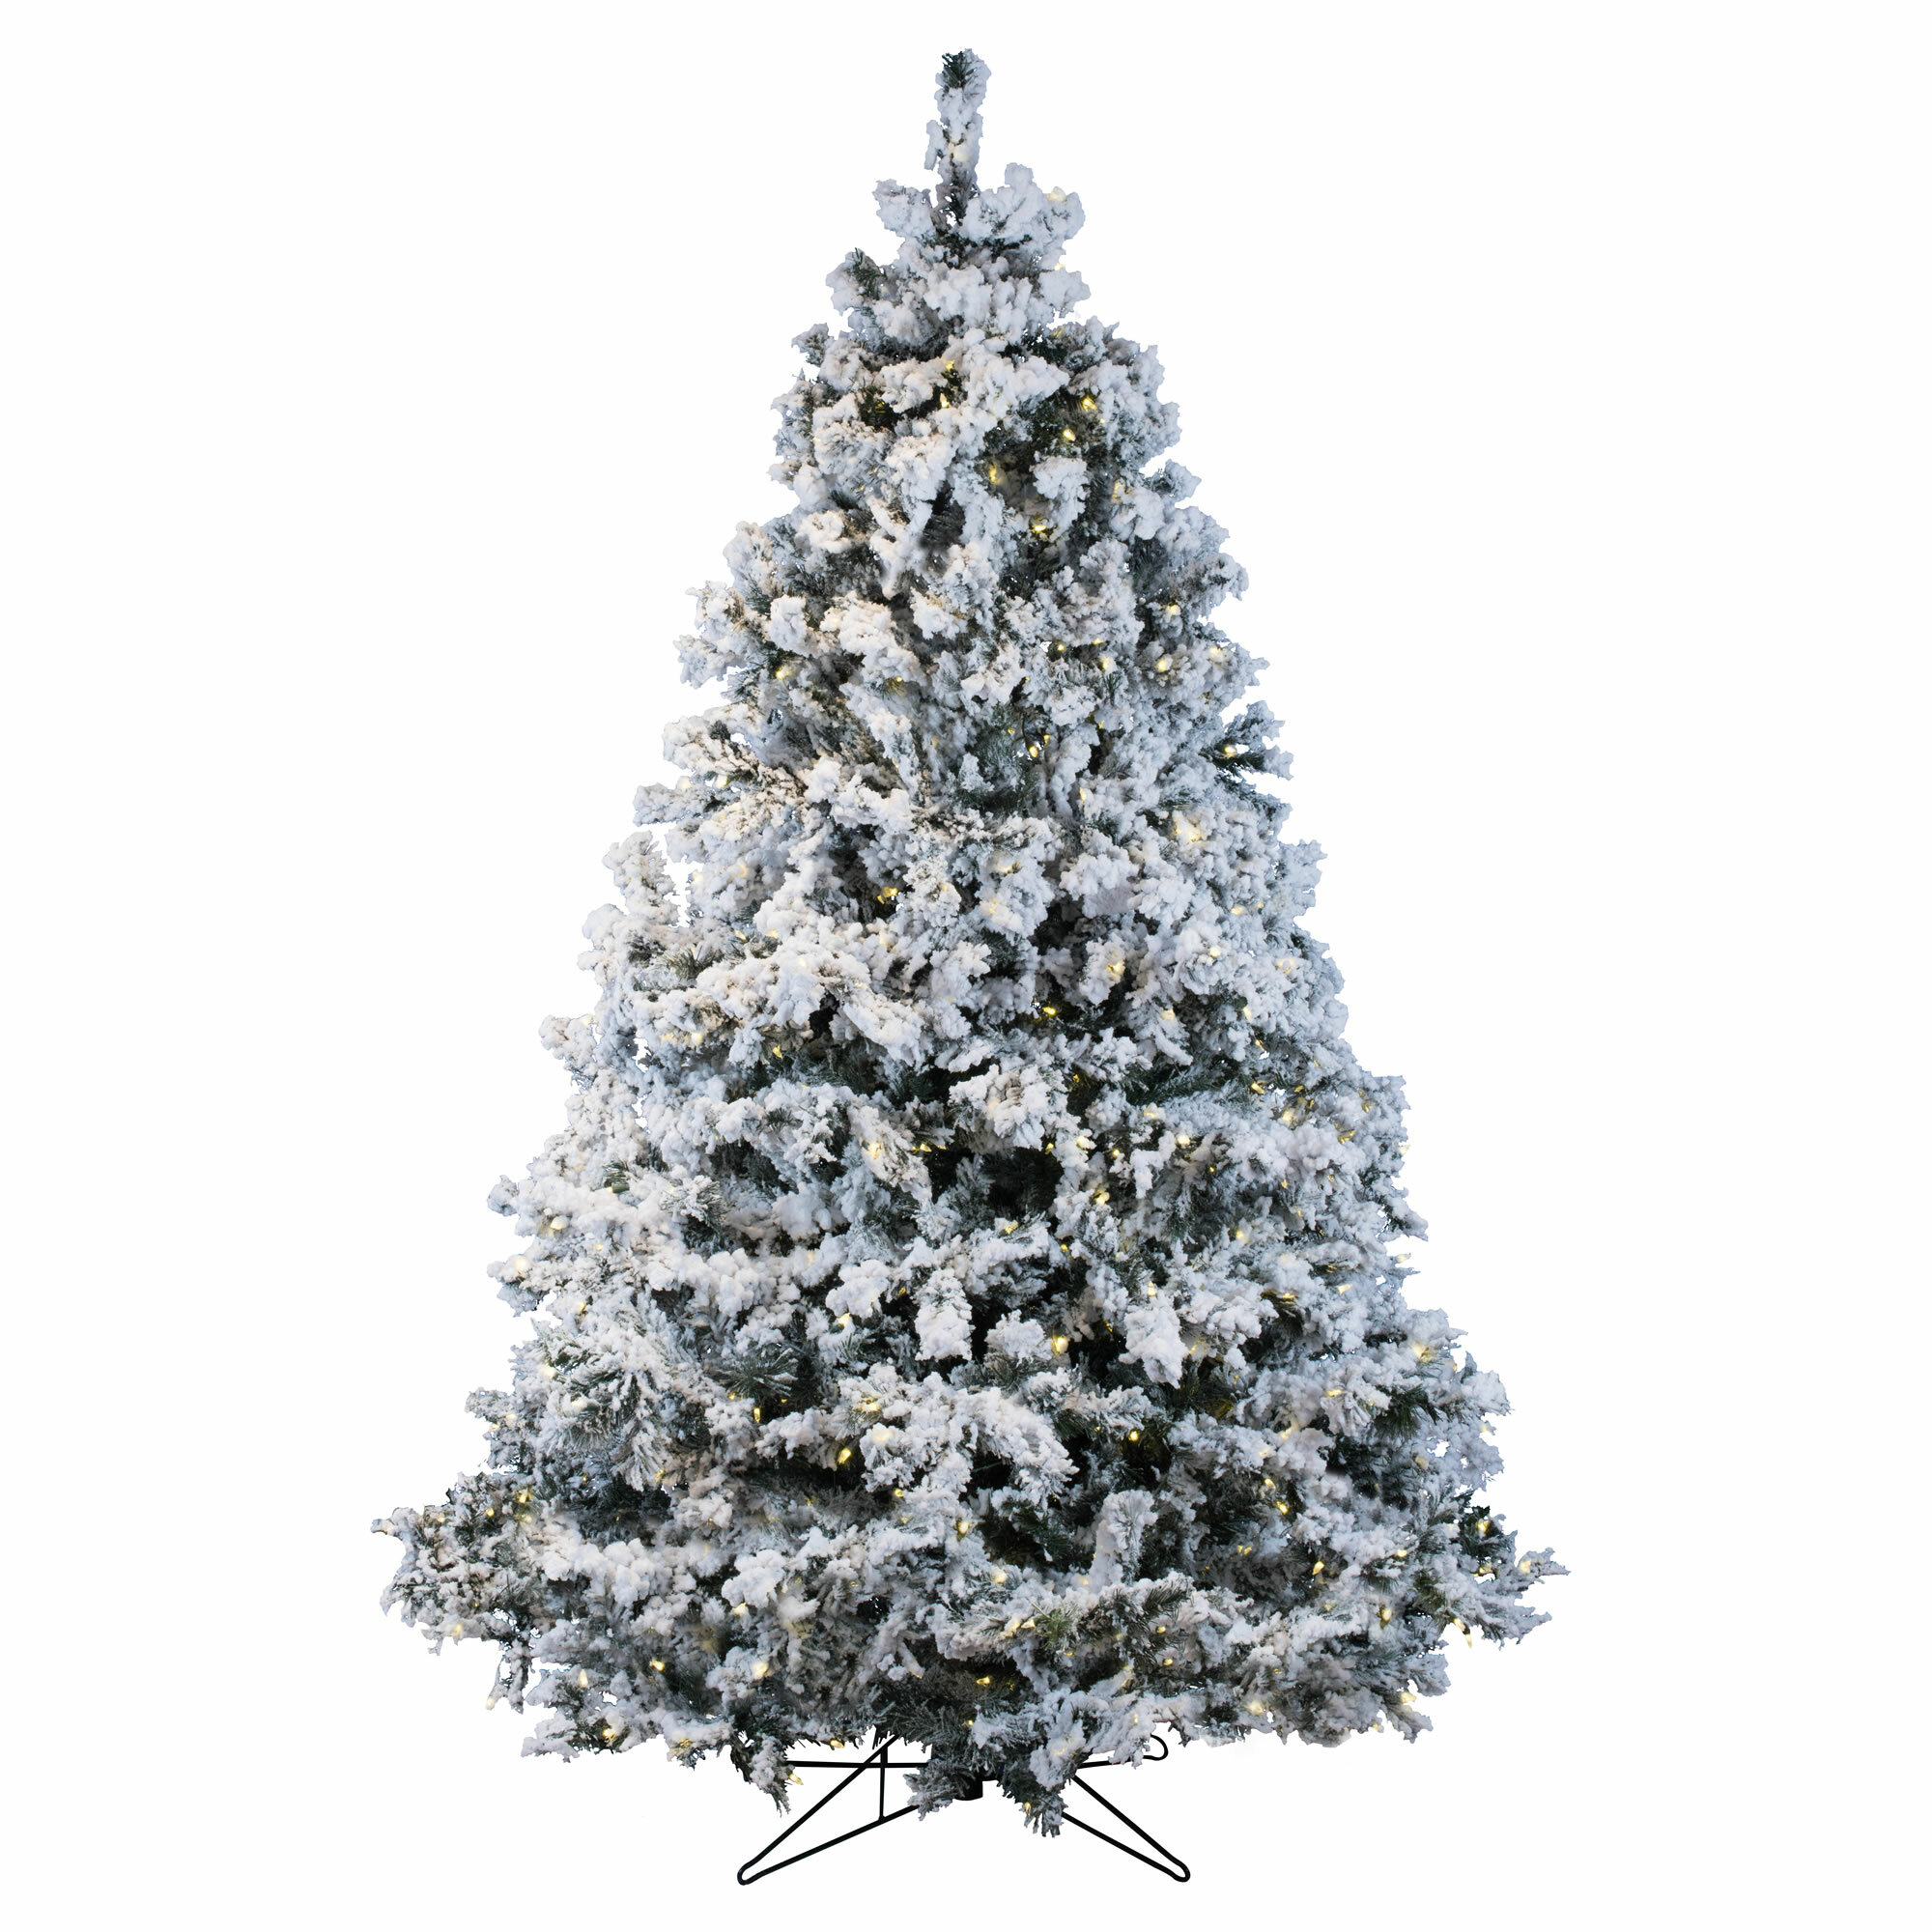 9 Artificial Christmas Tree.Flocked Alaskan 9 White Artificial Christmas Tree With 1200 Dura Lit Clear Lights With Stand